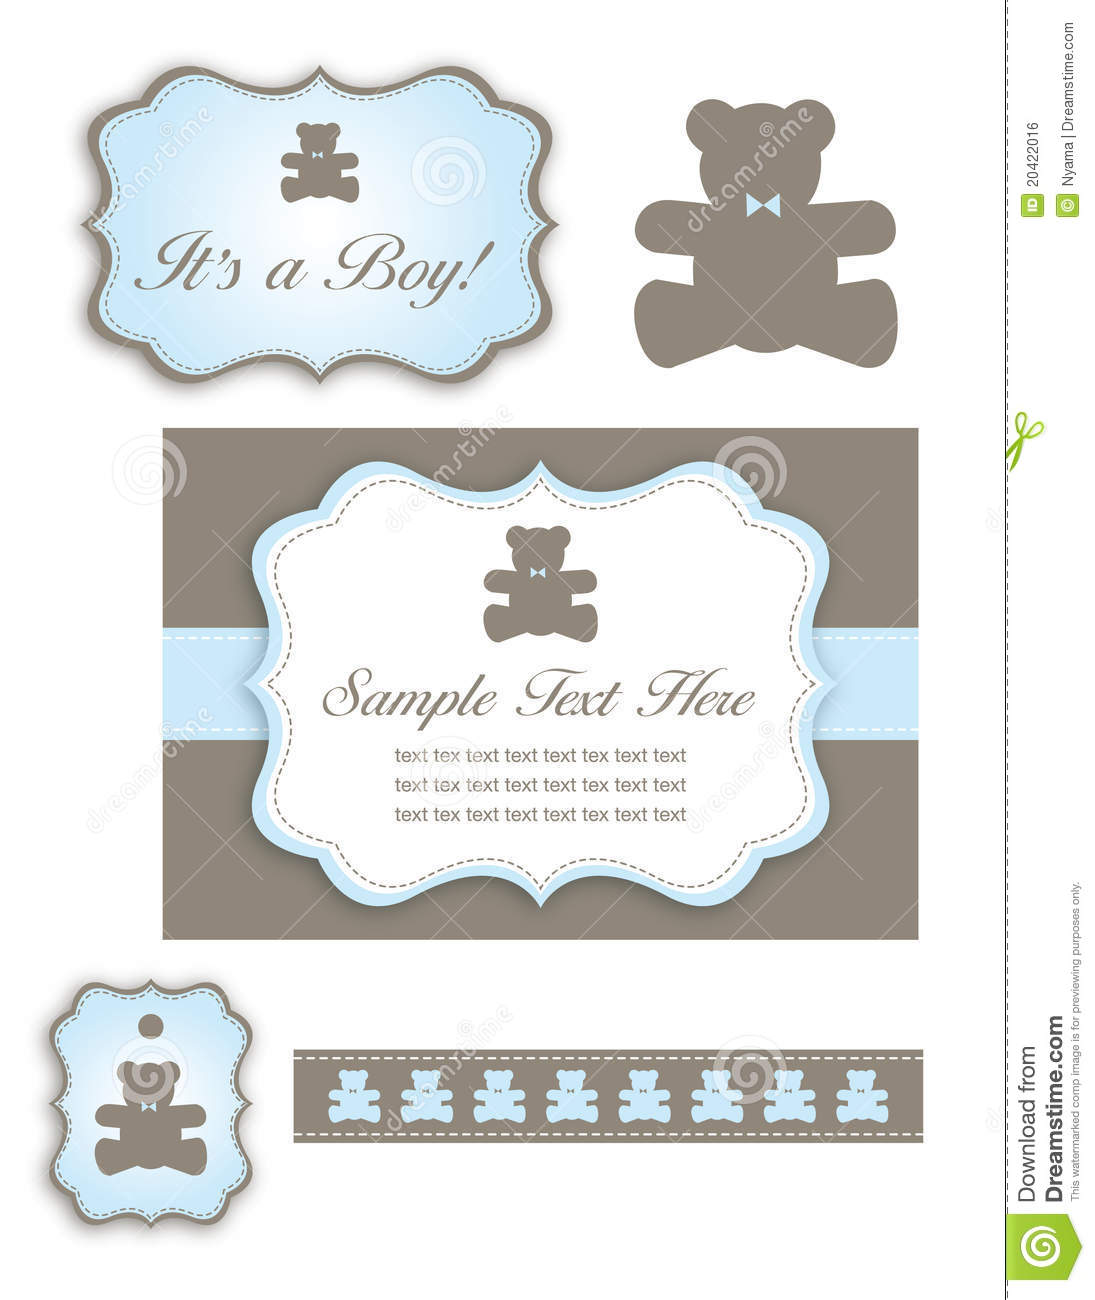 Free Baby Shower Invitation with perfect invitation layout